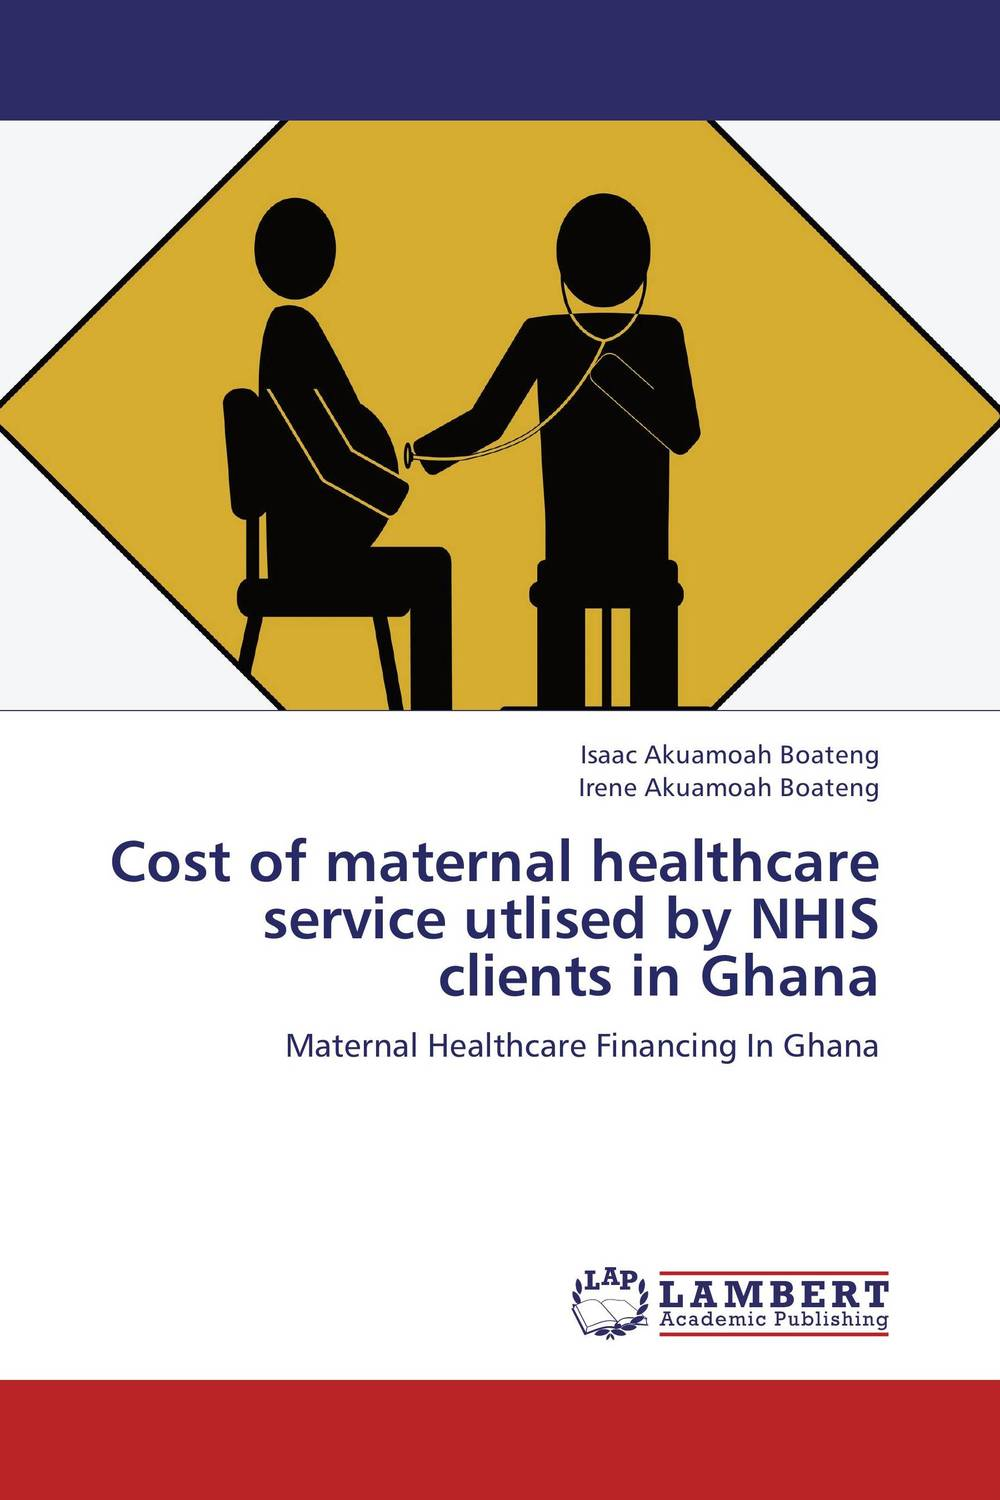 Cost of maternal healthcare service utlised by NHIS clients in Ghana cost of maternal healthcare service utlised by nhis clients in ghana